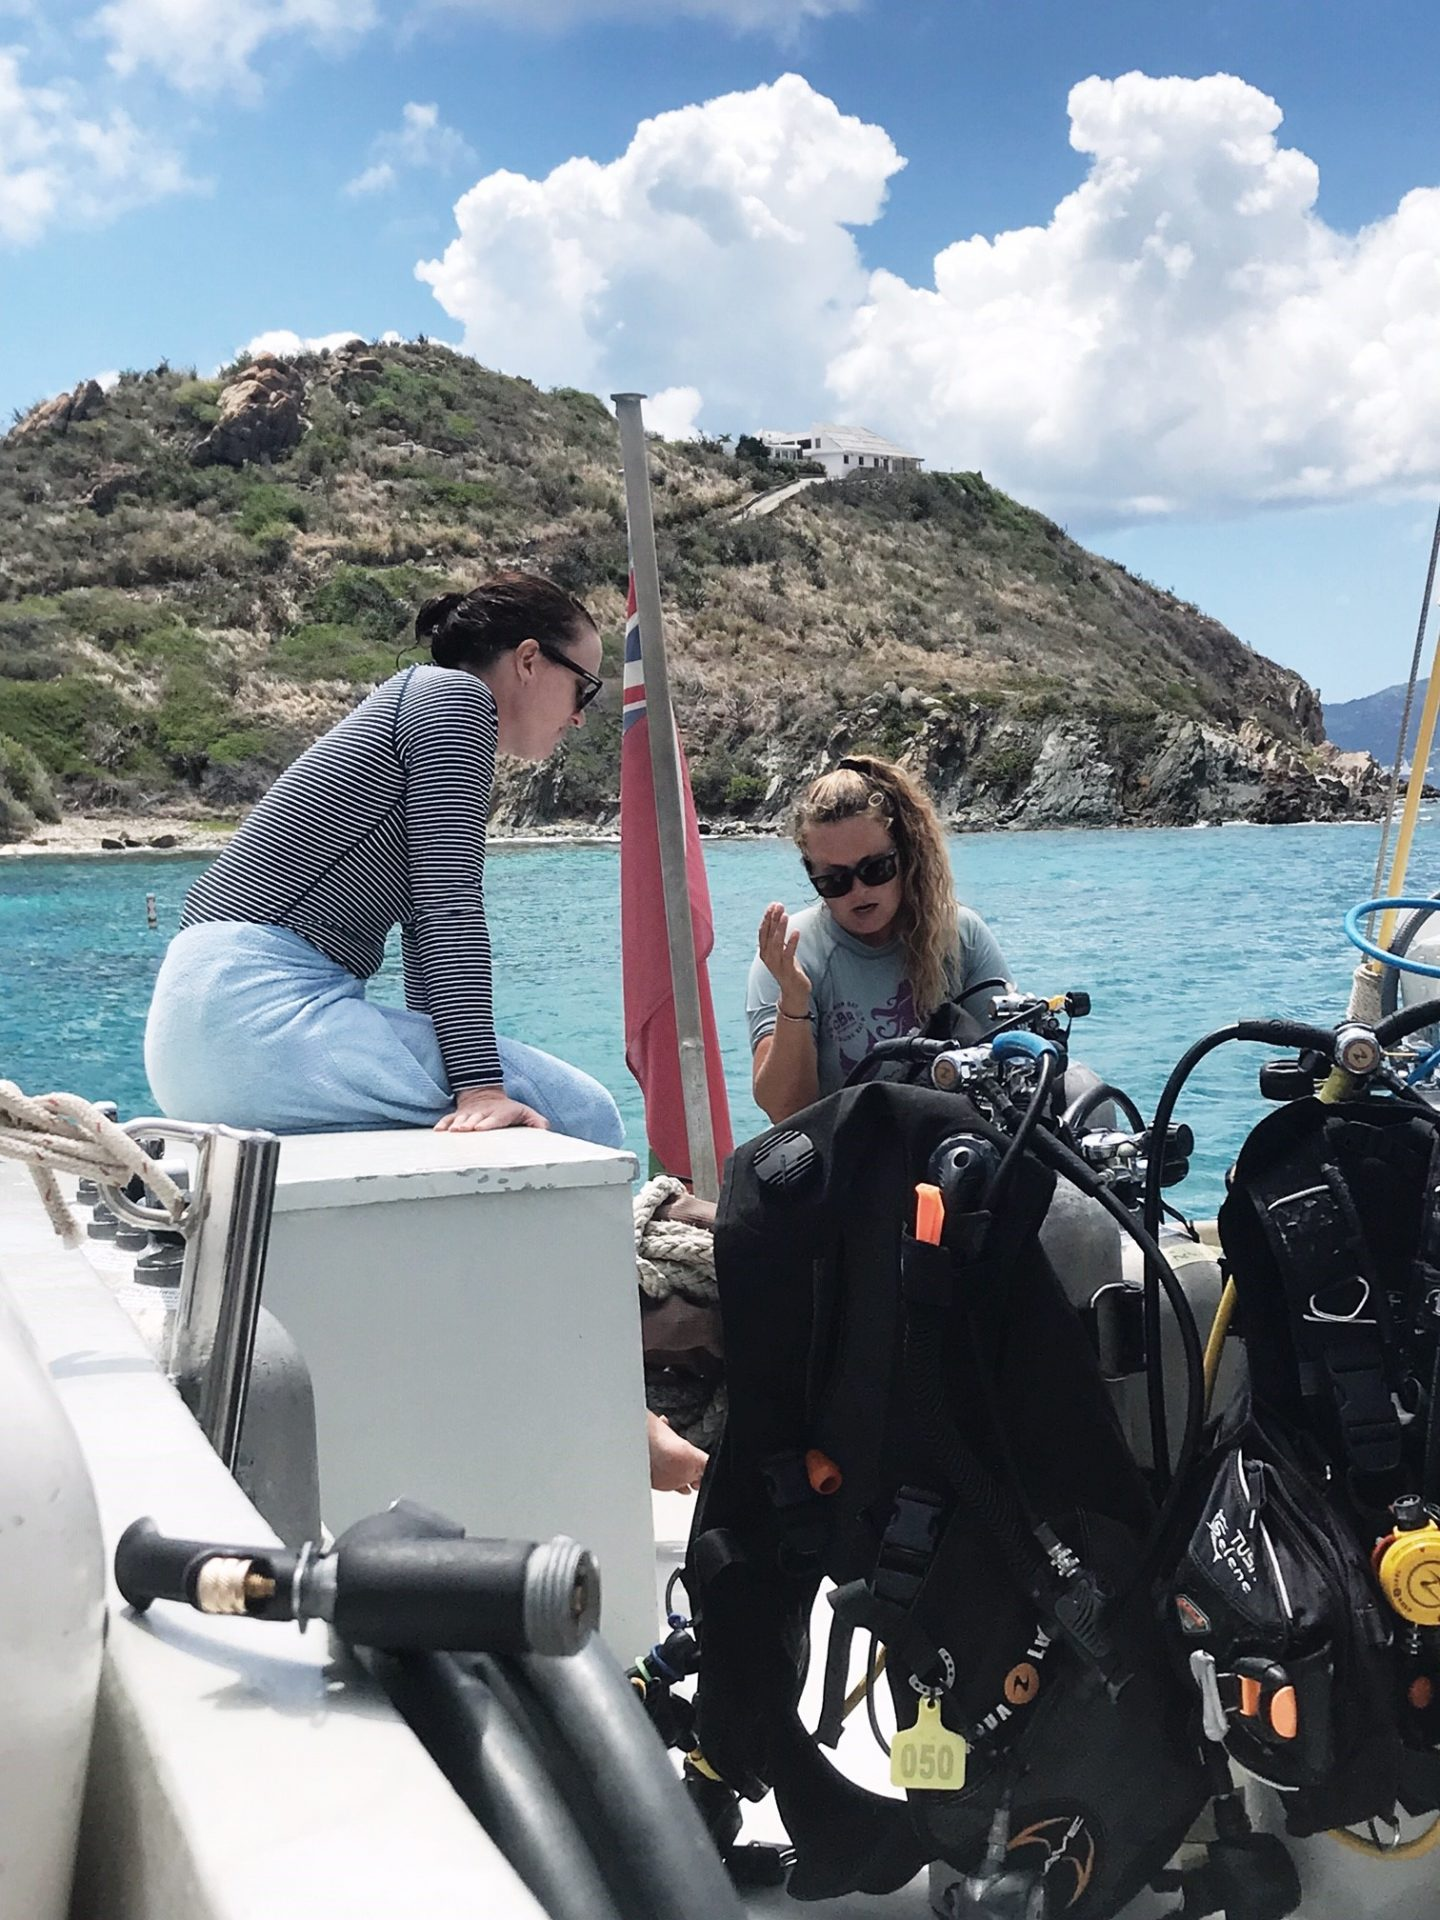 Diving aboard Cuan Law - Exploring the British Virgin Islands